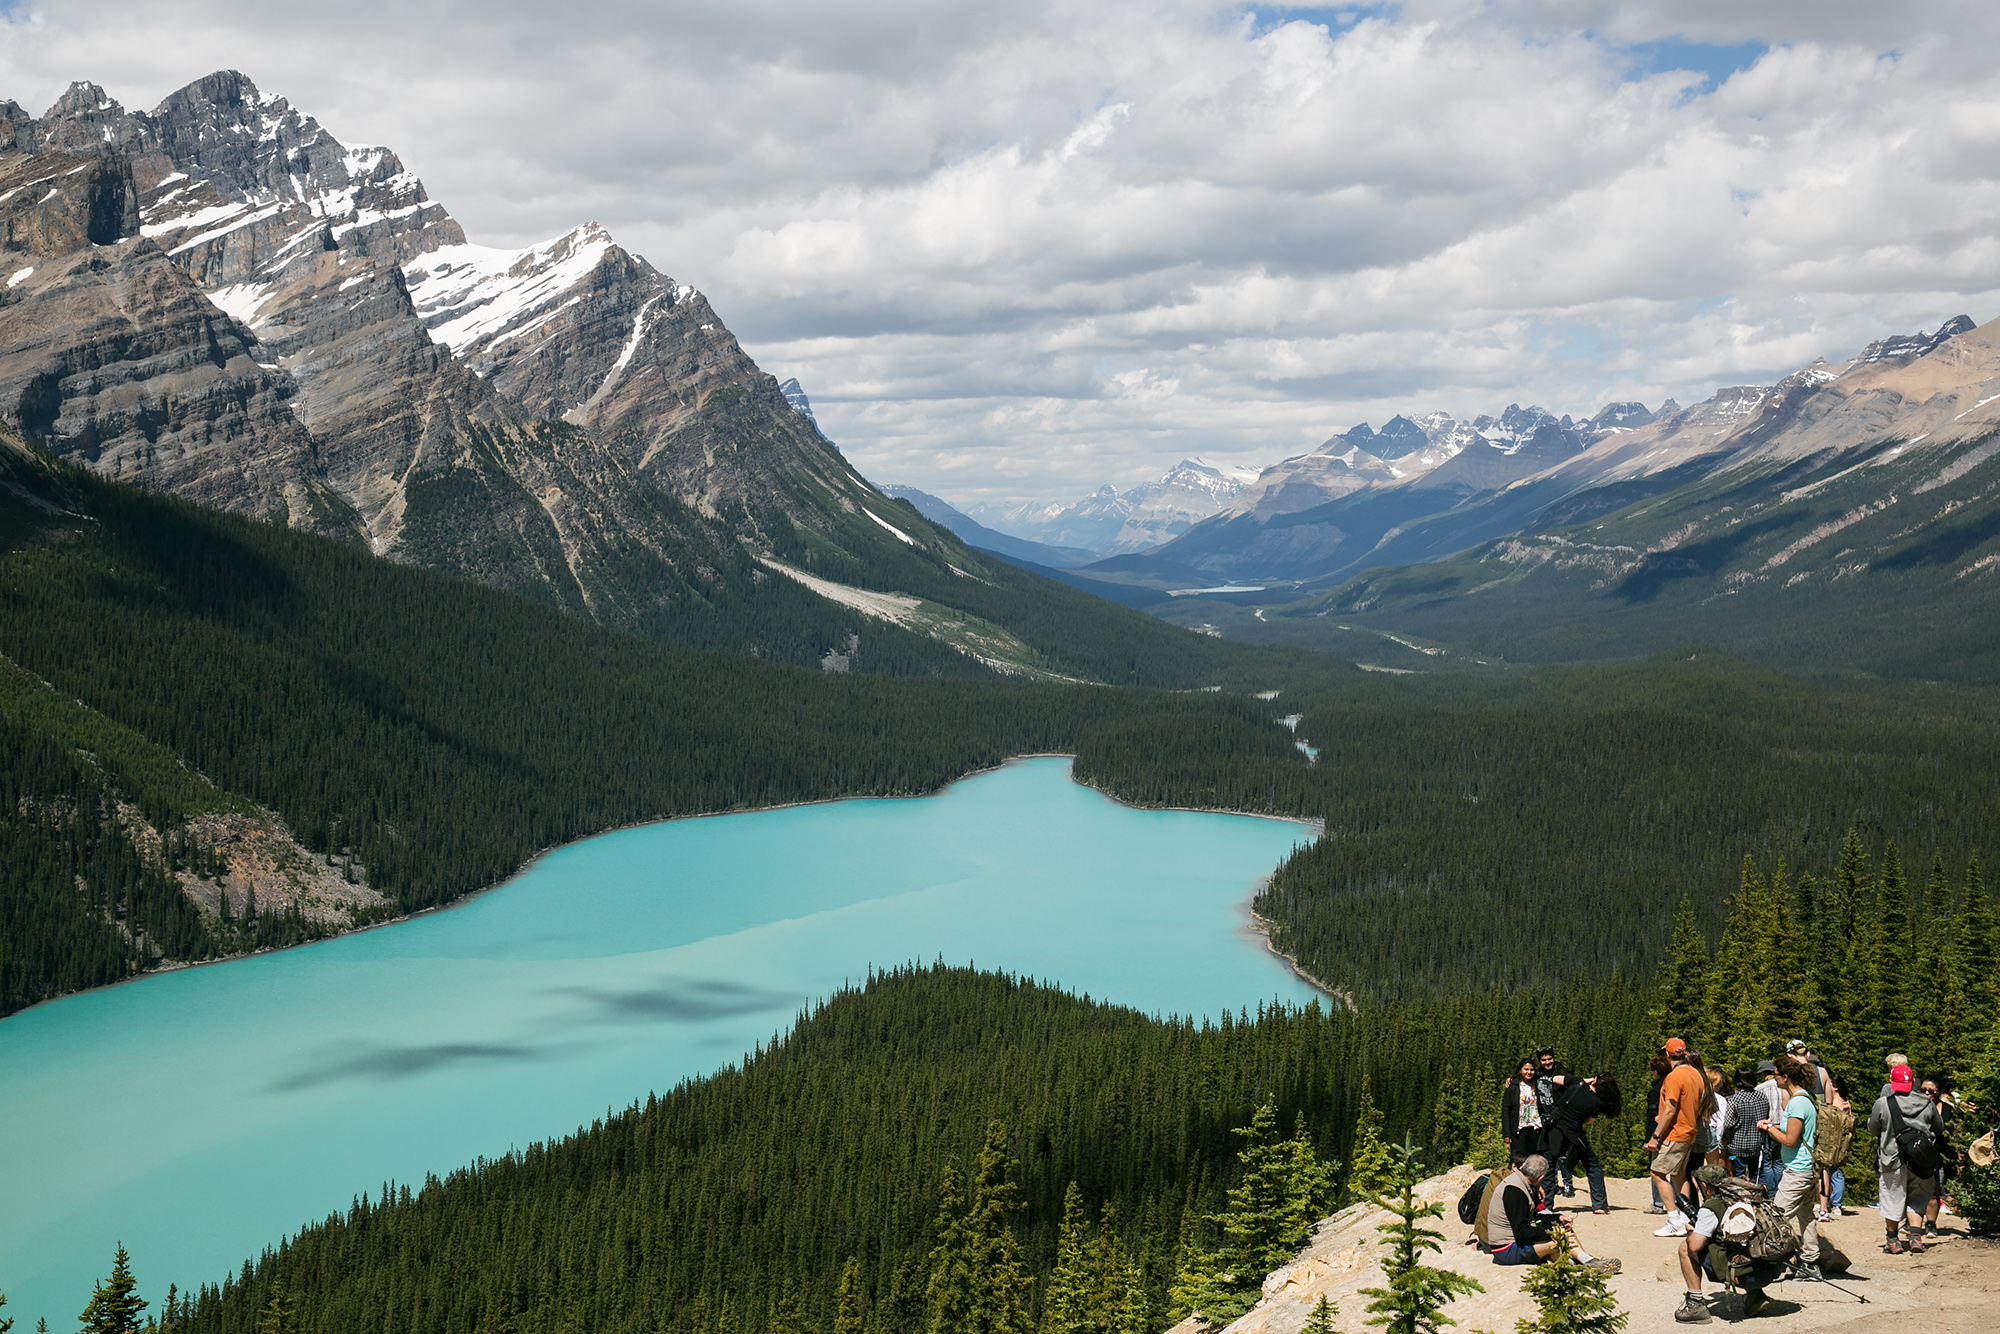 Peyto Lake up the Icefields Parkway in Banff National Park.